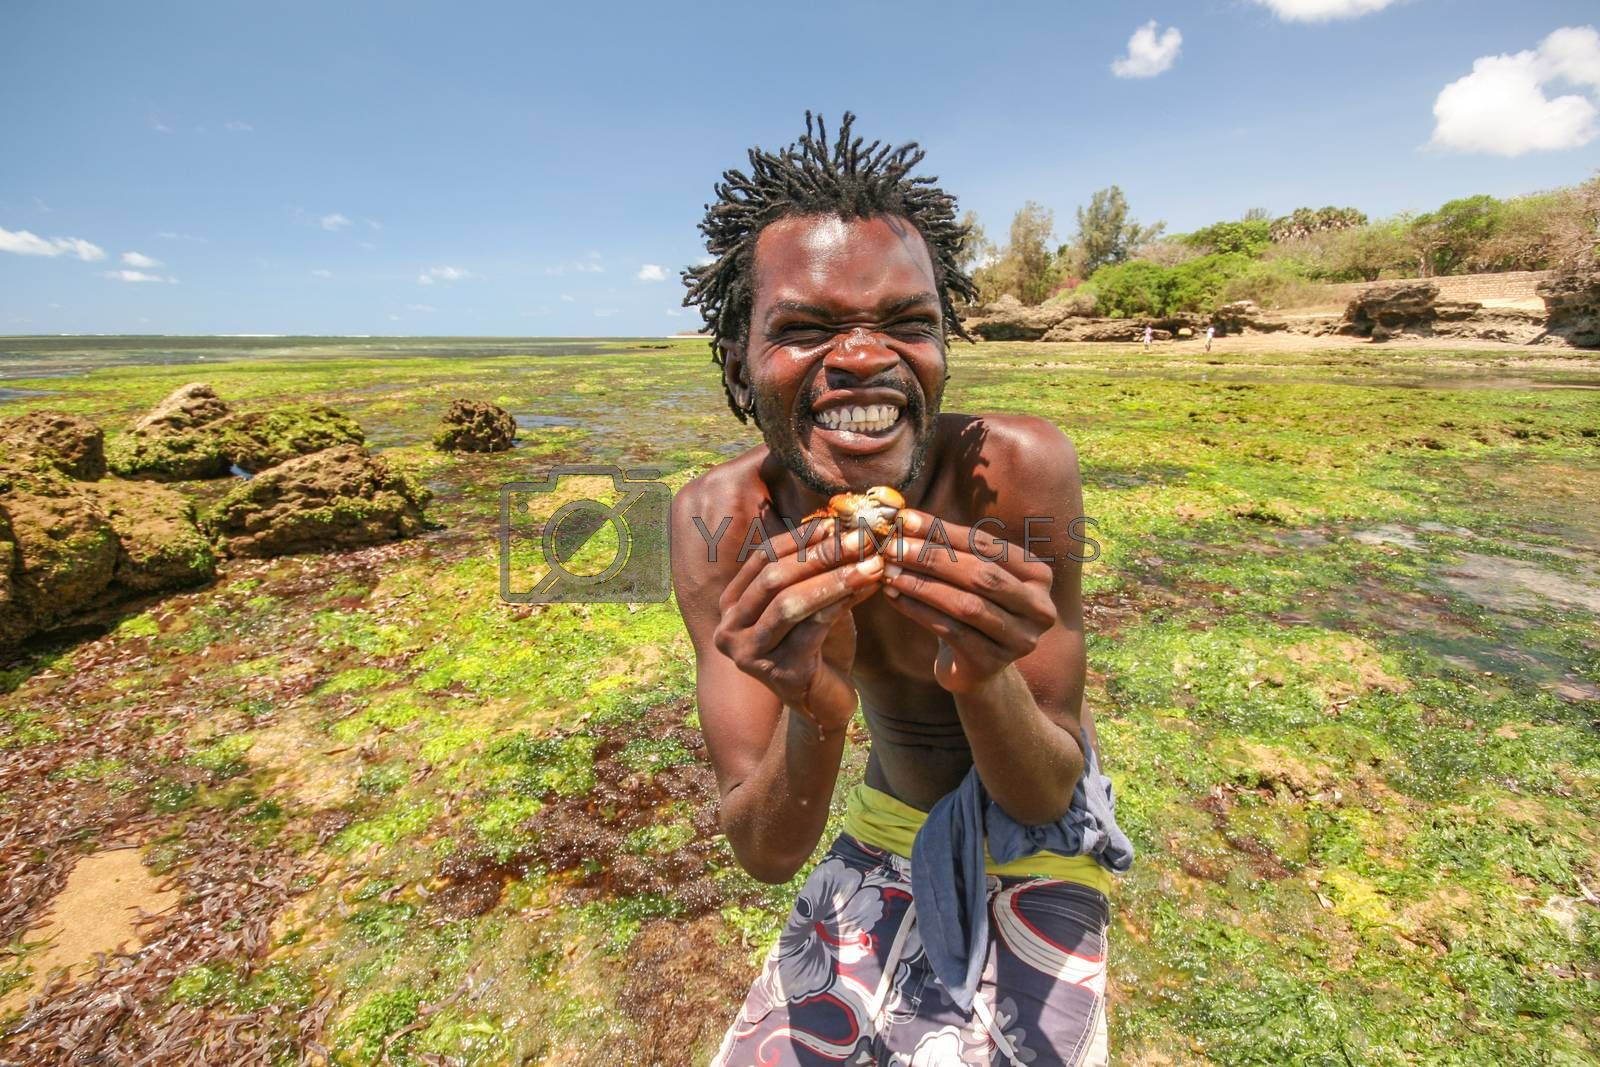 Malindi, Kenya - April 08, 2015: Local beach boy posing for tourists holding small crab and smiling widely, with sea bottom uncovered during low tide in background.